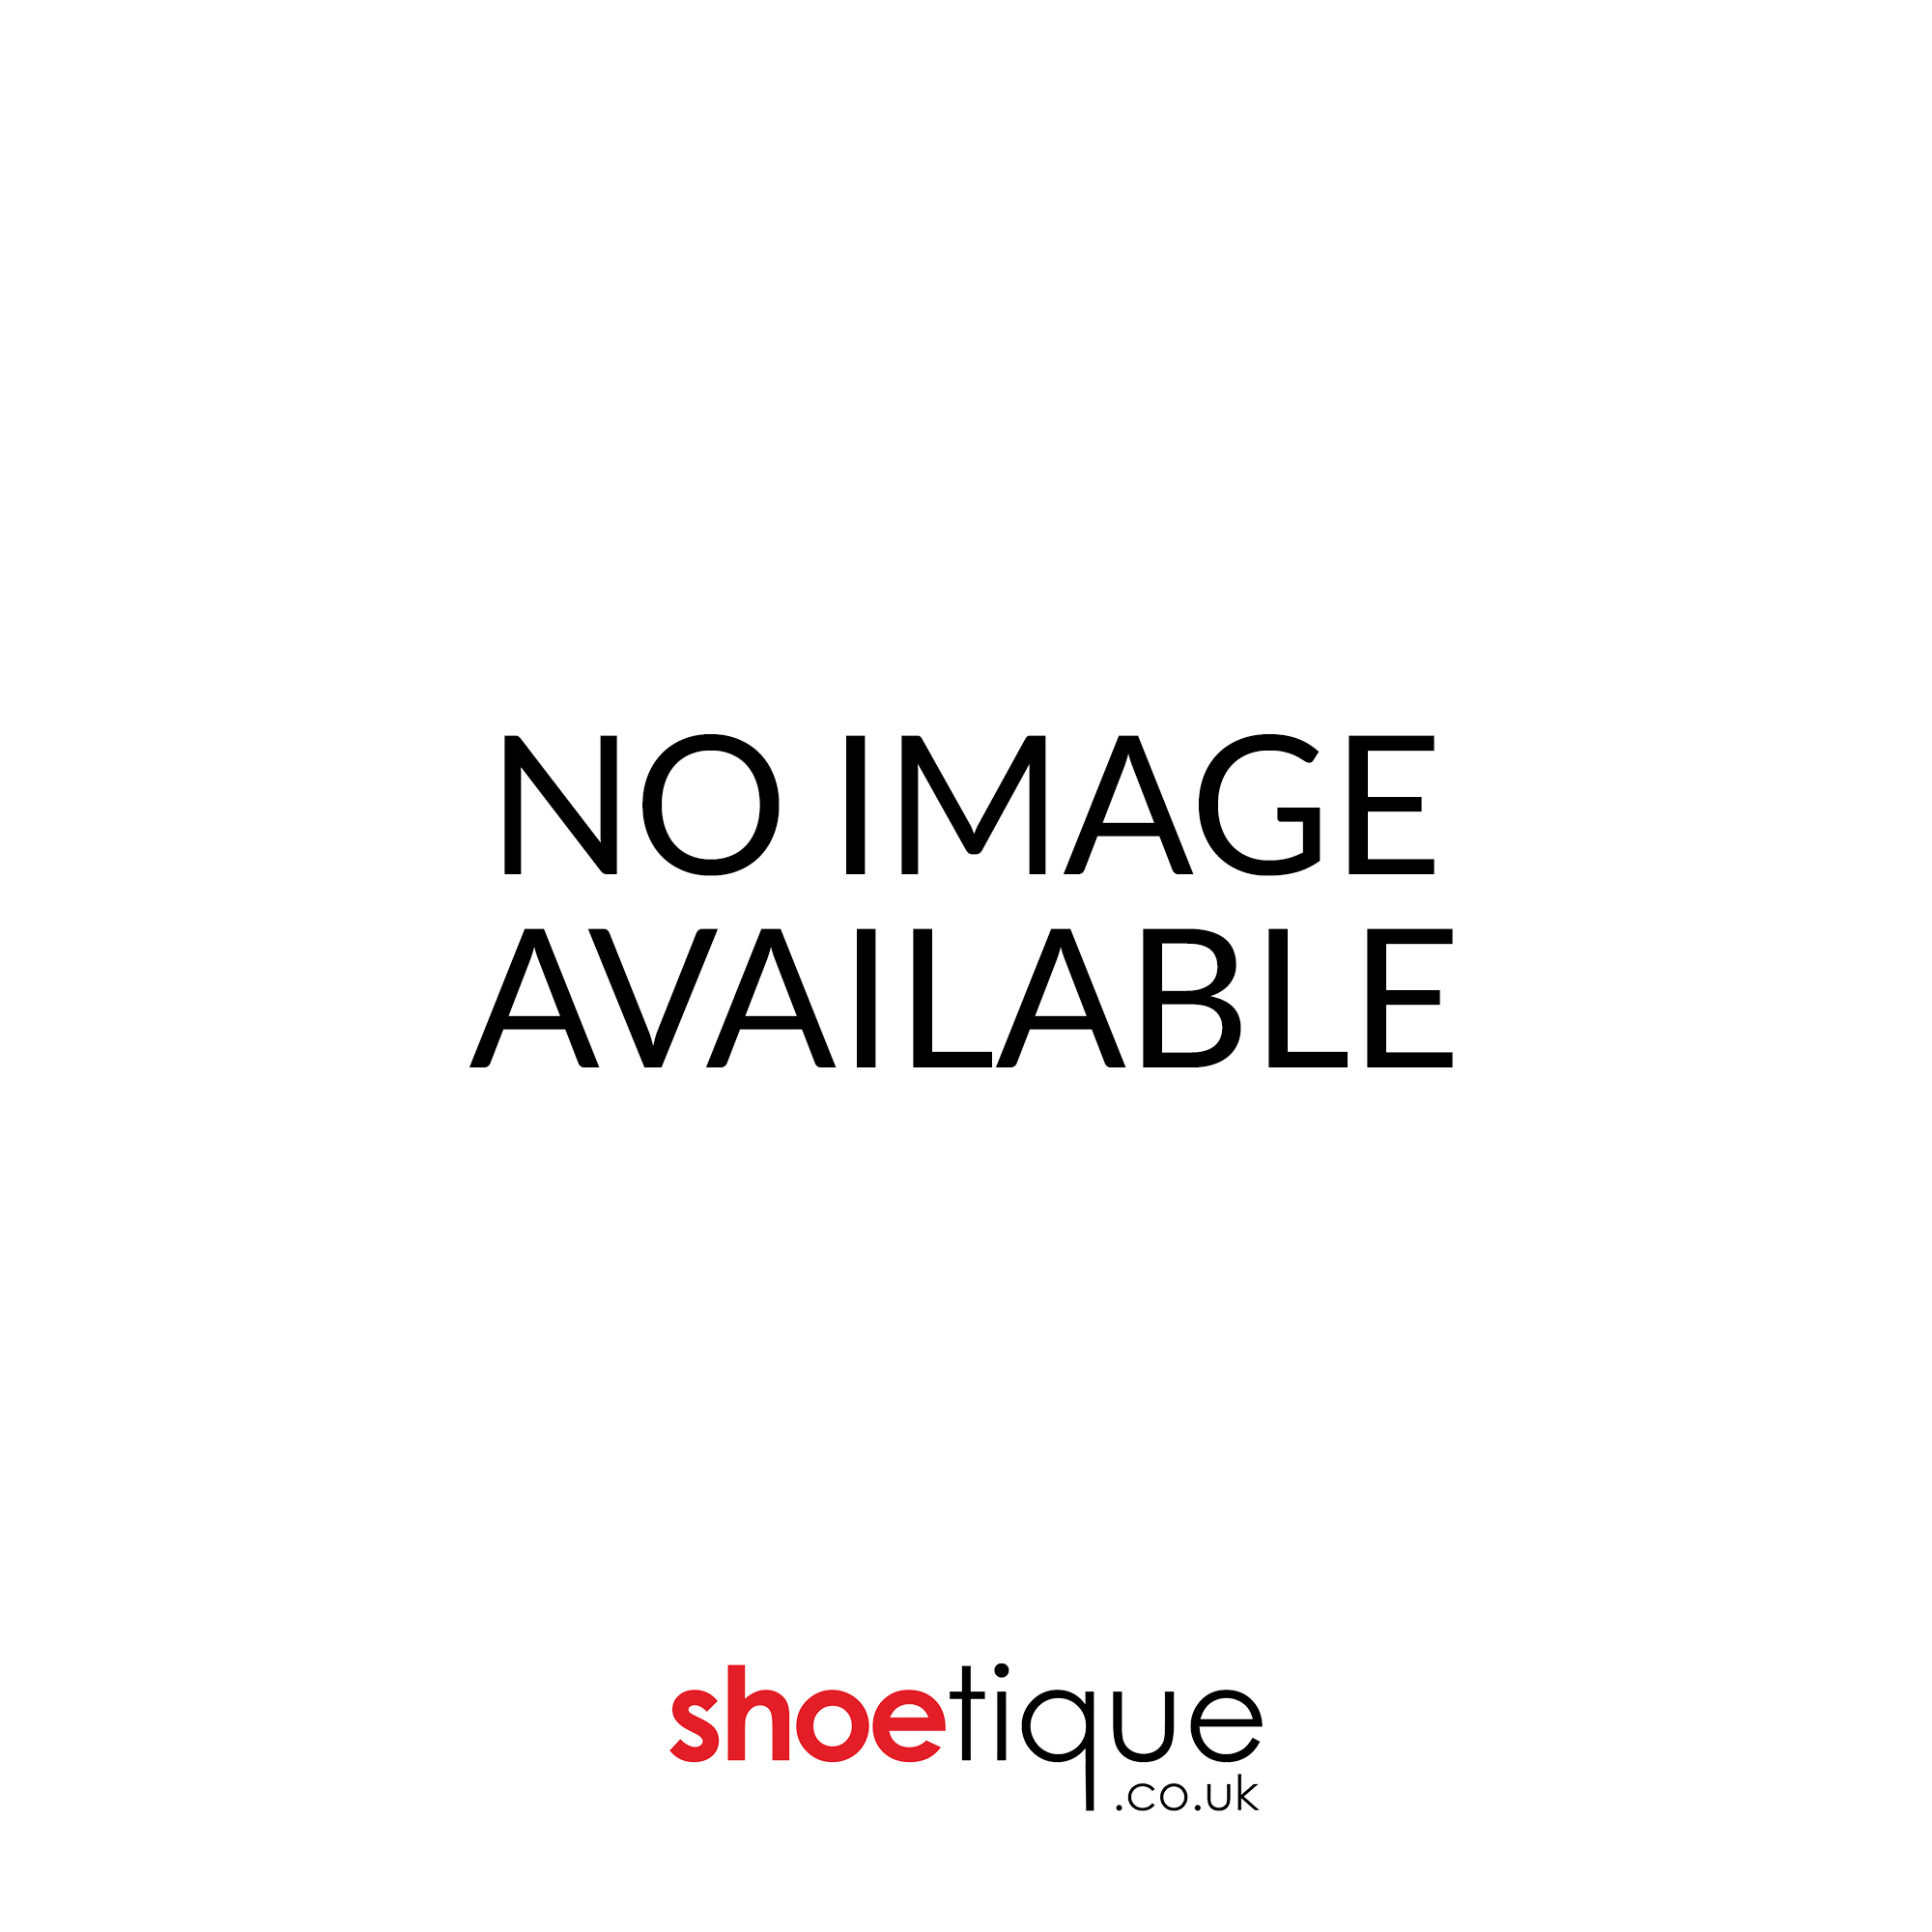 Awesome  WOMENS  SANDALS  Ecco  Ecco 238053 Jab Women39s Casual Sandal